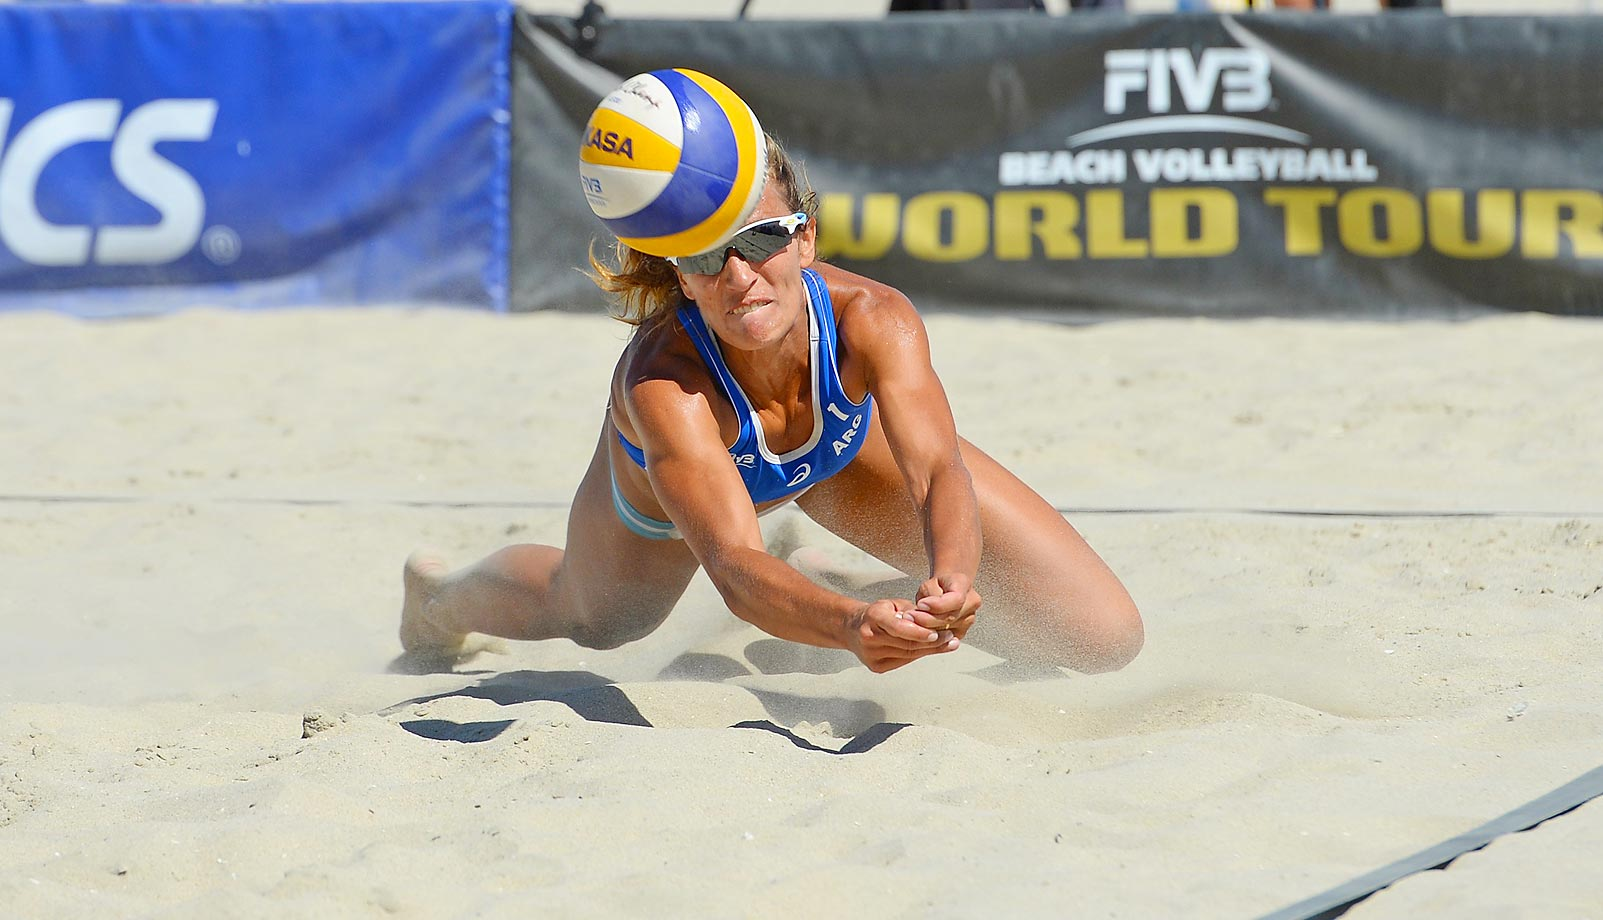 Ana Gallay dives for a difficult dig at the FIVB Long Beach Grand Slam in California.